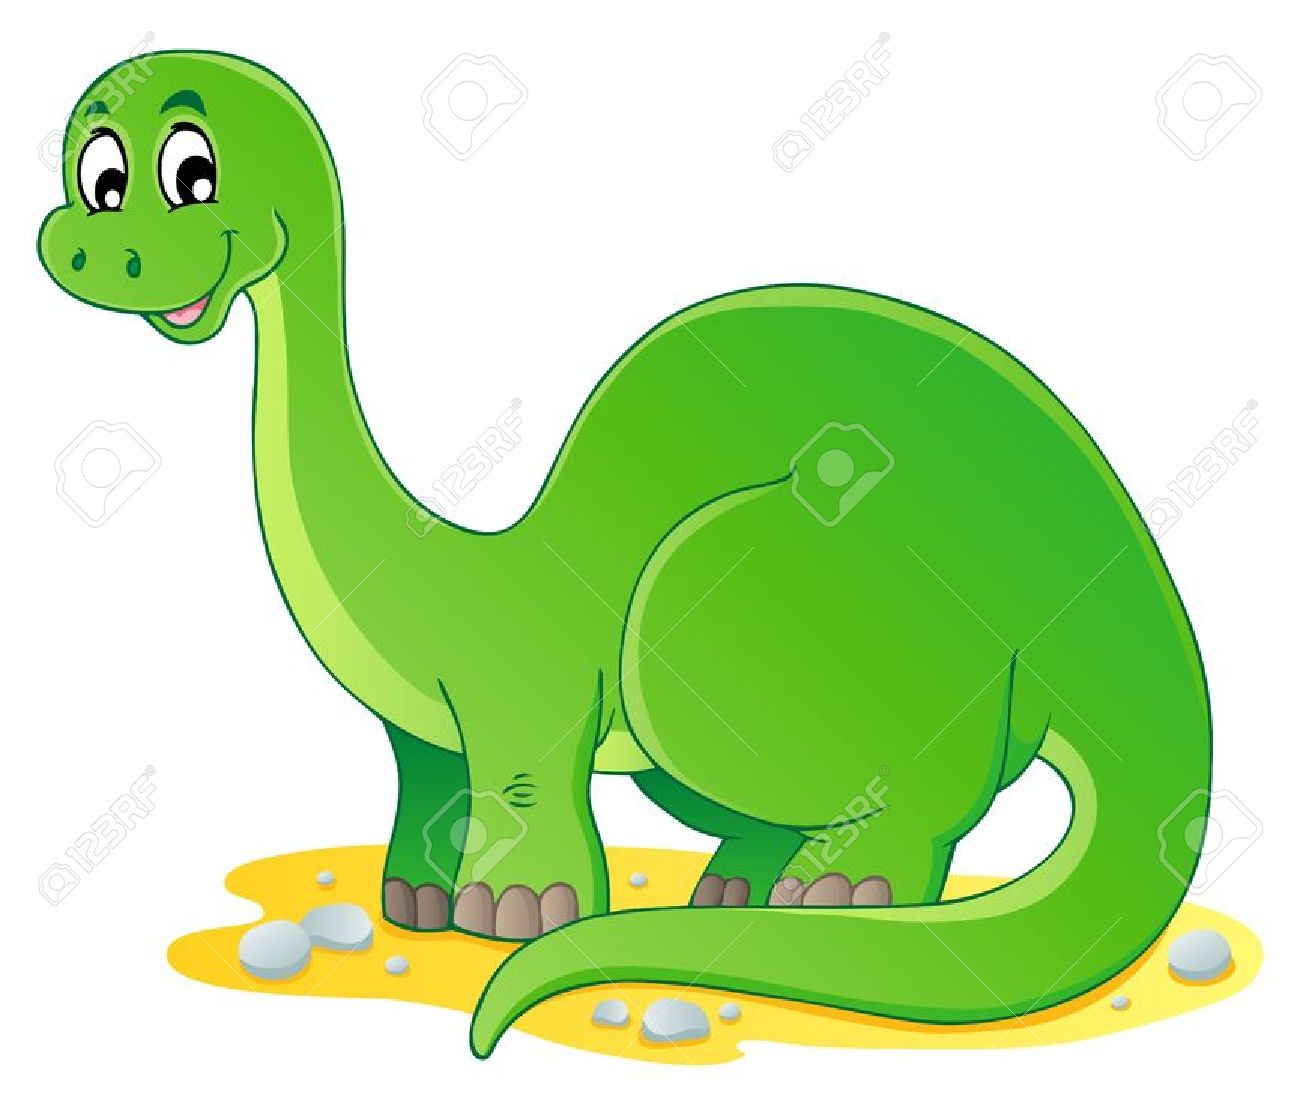 Dinosaur clipart #19, Download drawings